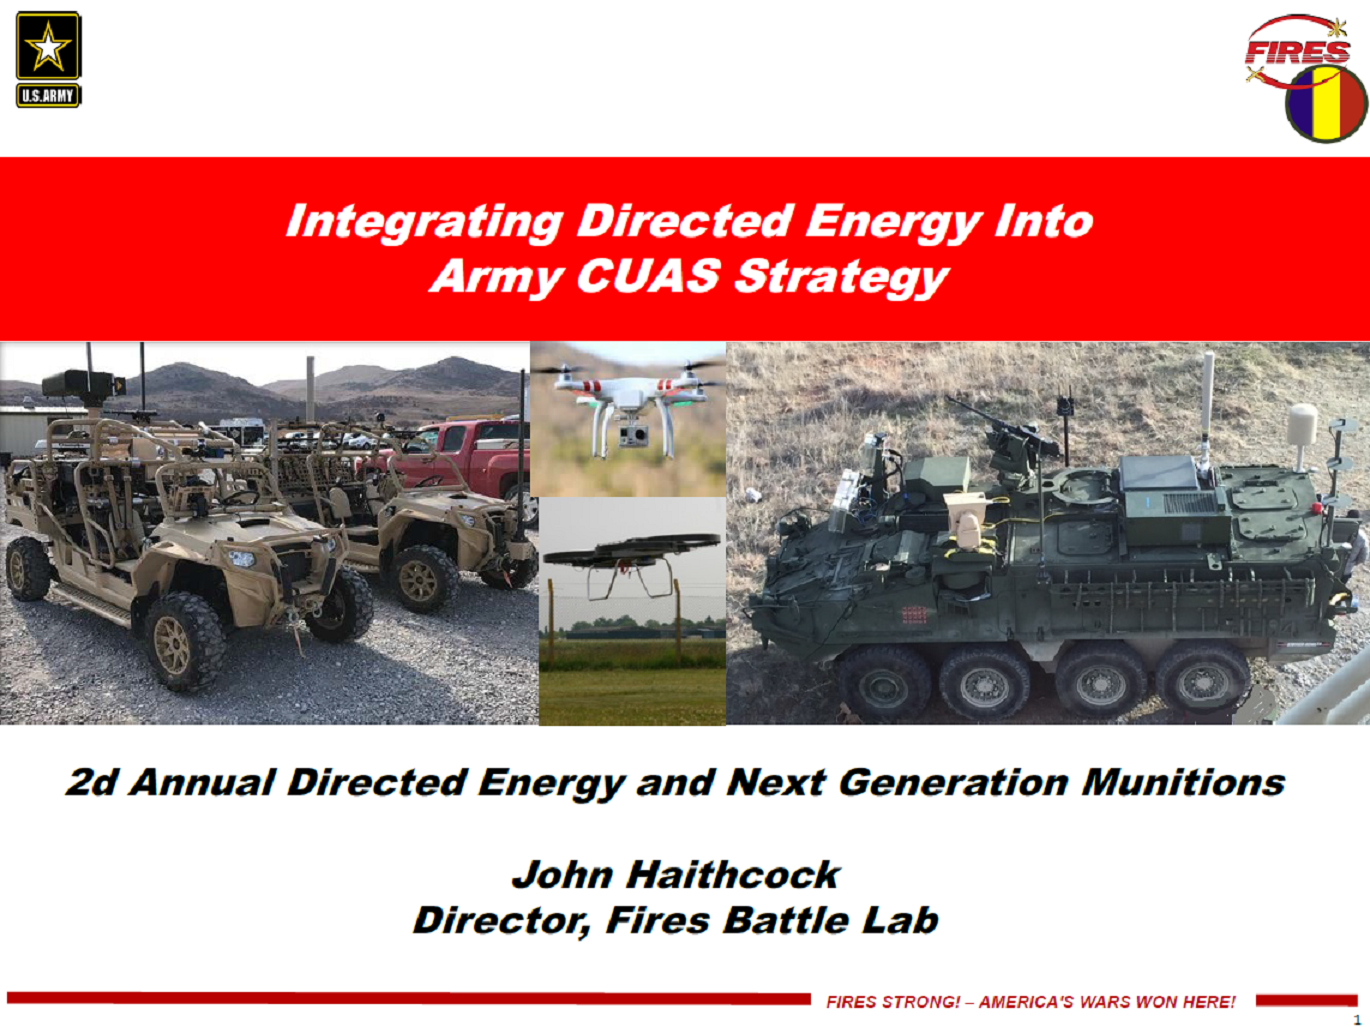 Integrating Directed Energy into the Army Counter UAS Strategy